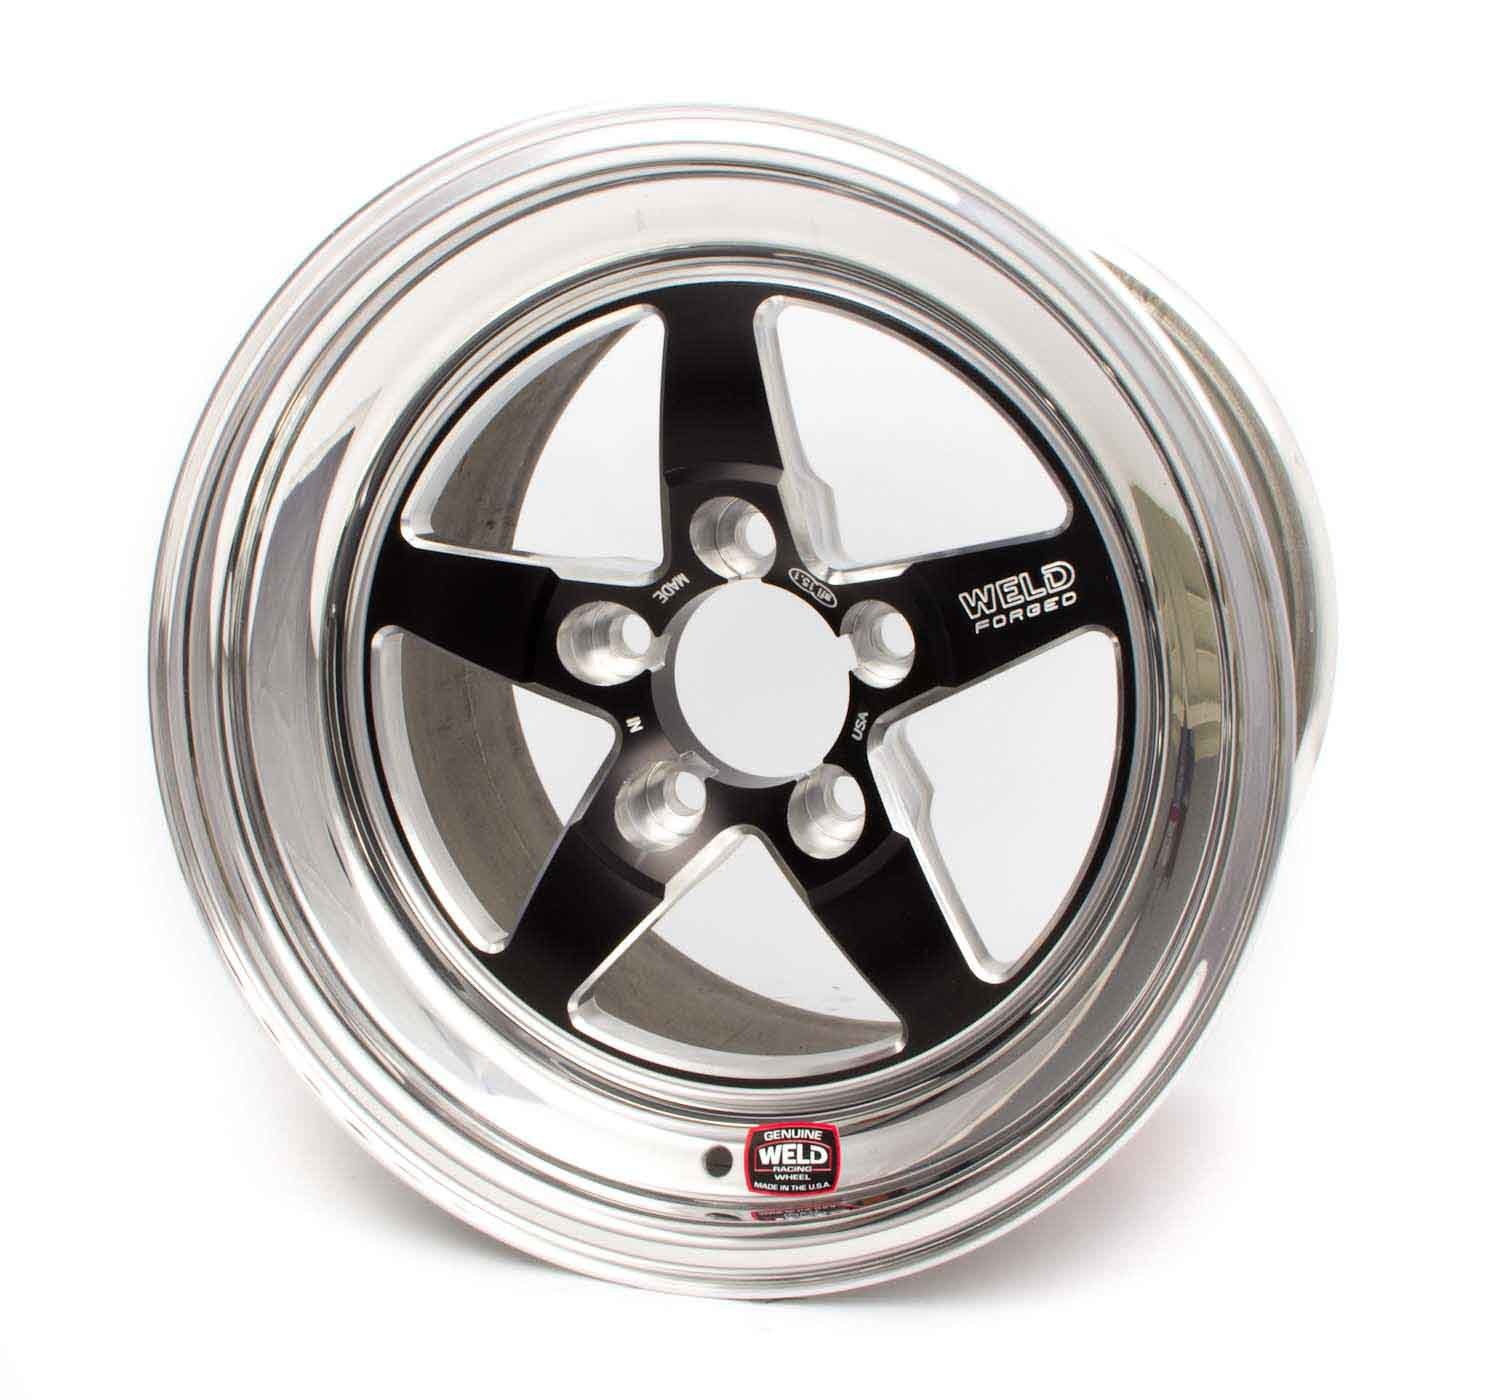 17x10.0 RT-S Wheel 5x120 BC  7.2BS